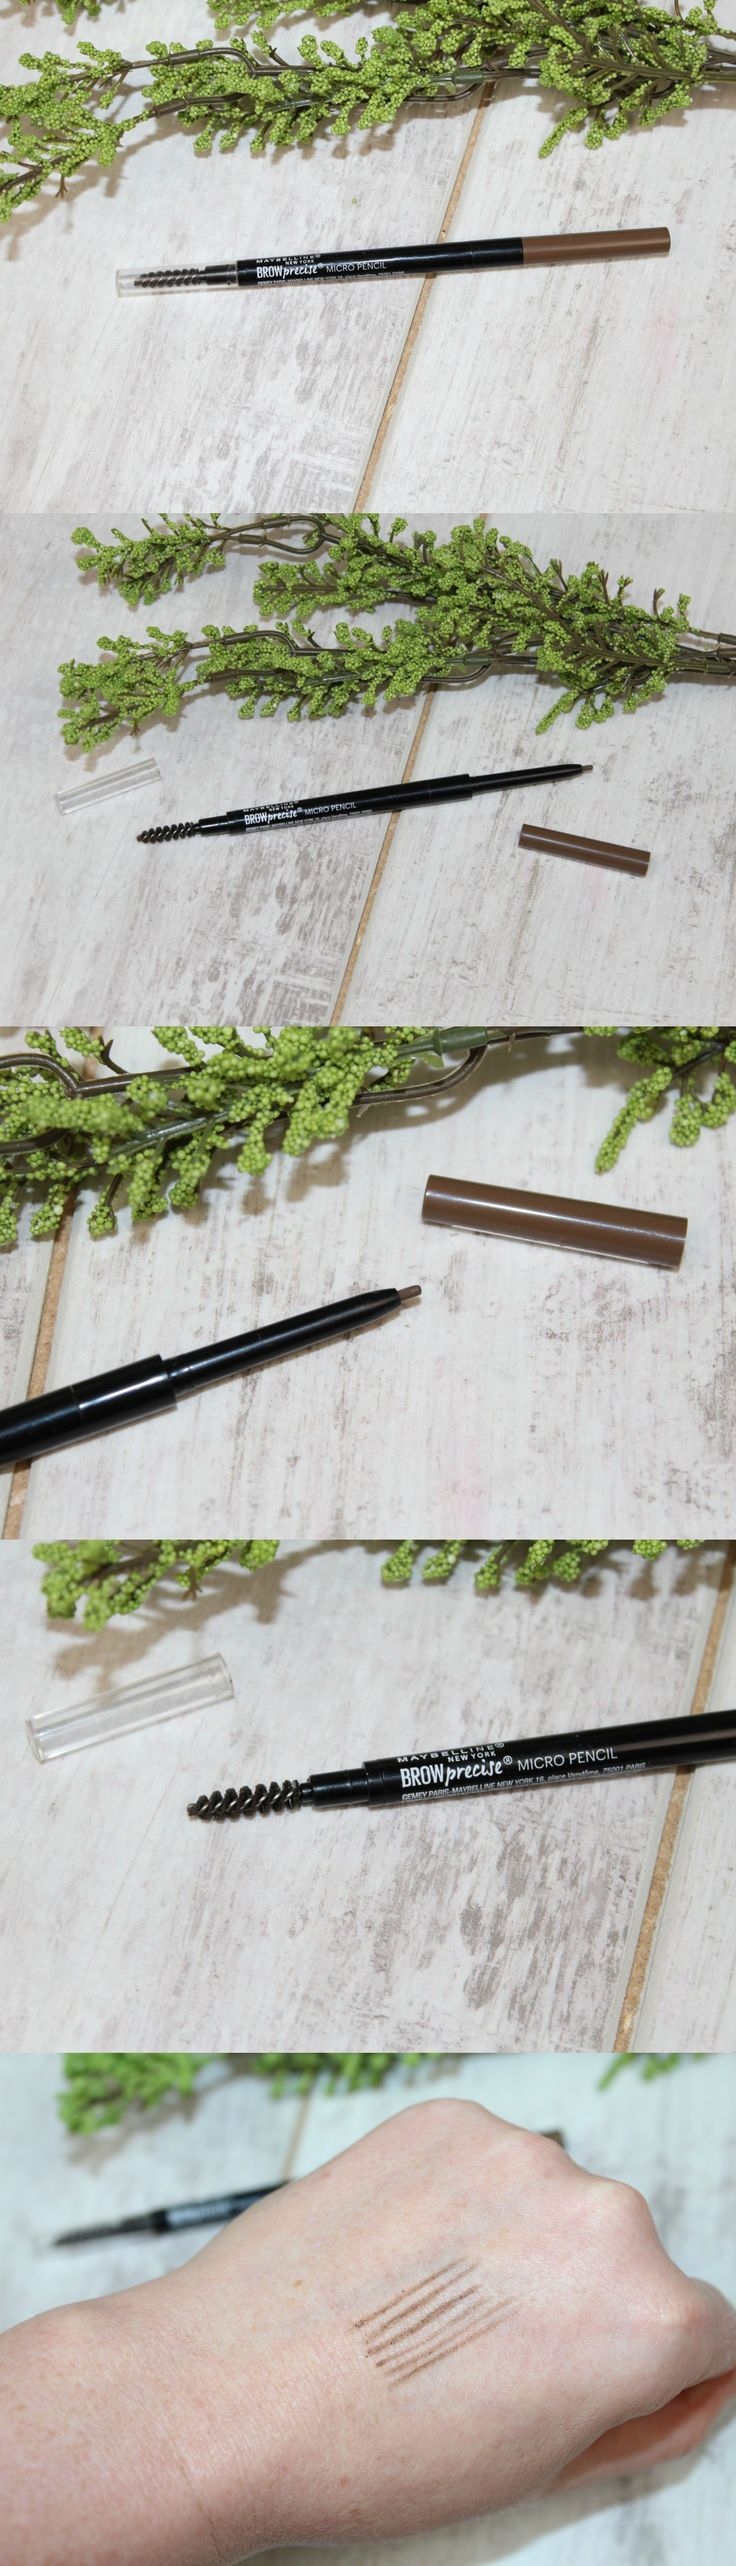 Maybelline Brow Precise Micro Pencil Review & Photos